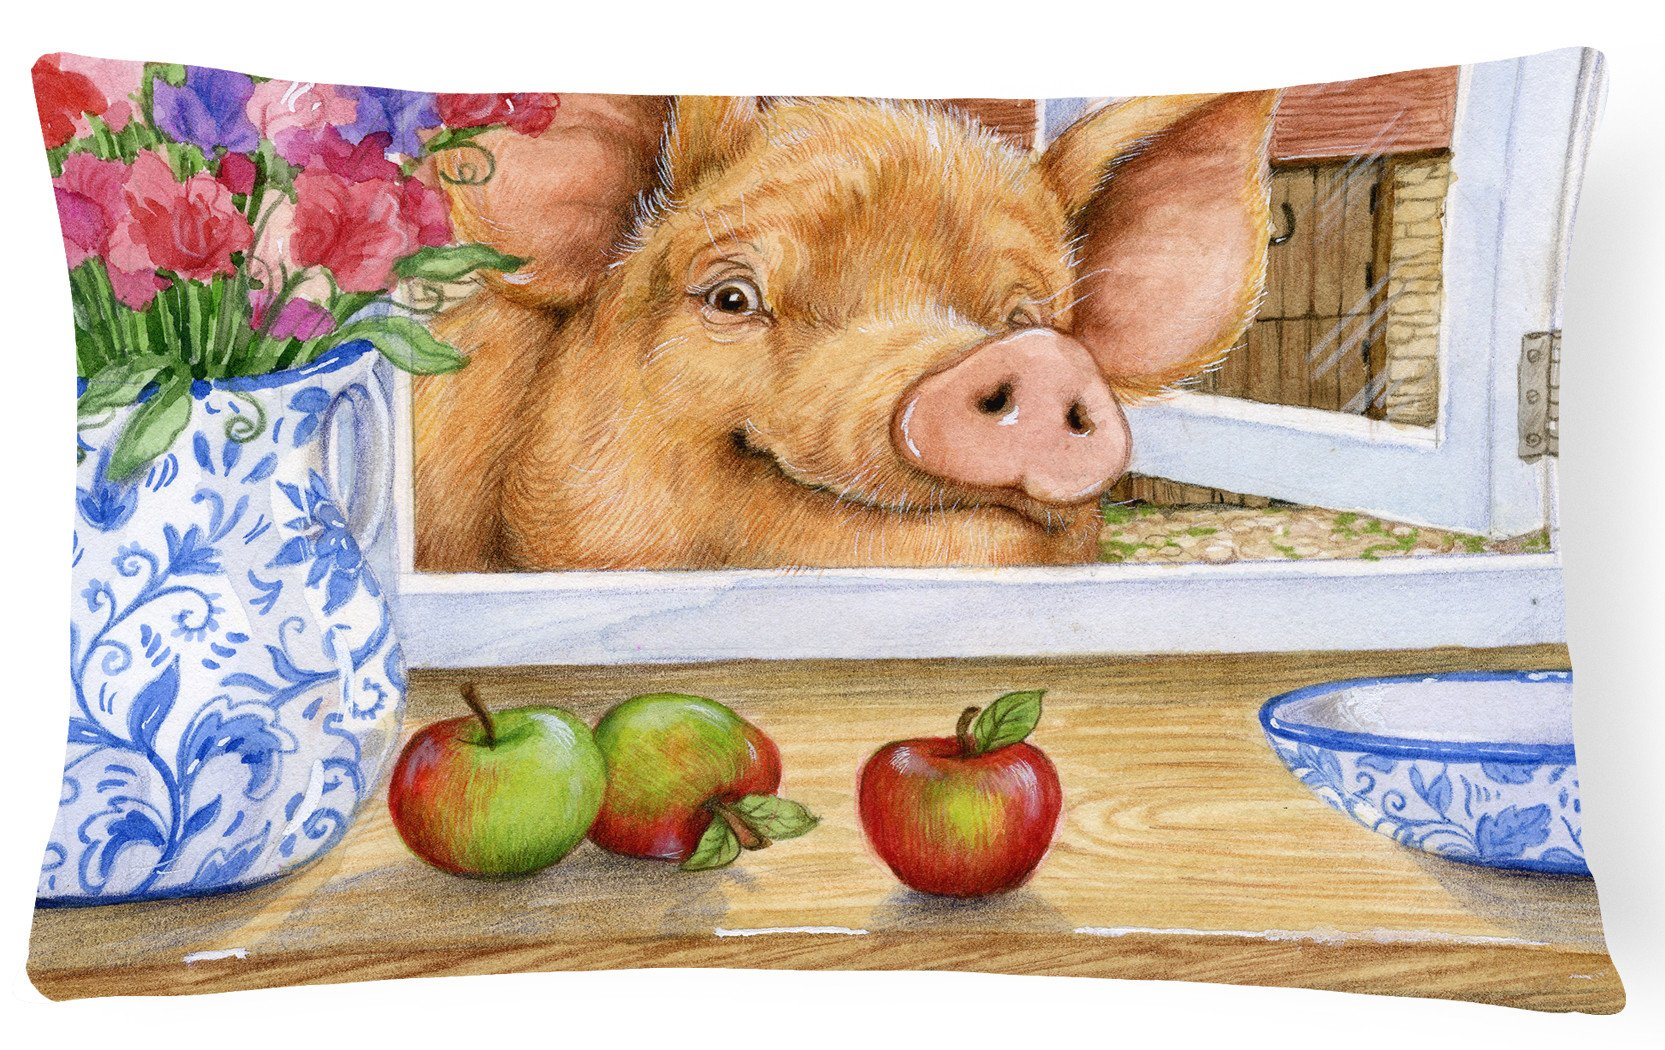 Pig trying to reach the Apple in the Window Fabric Decorative Pillow CDCO0352PW1216 by Caroline's Treasures